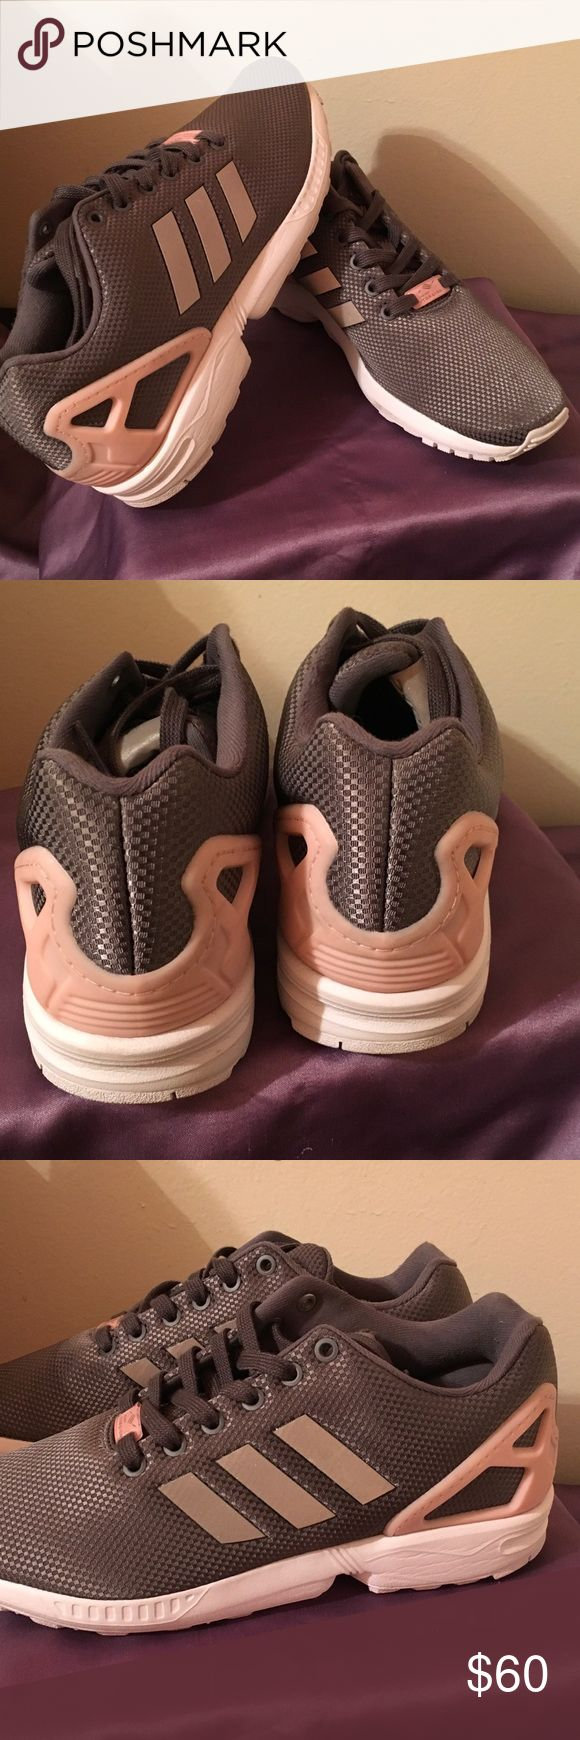 Like new Adidas Zx Flux sneakers Gray and pink Adidas ZX Flux sneakers. Comfy and cute, barely worn. adidas Shoes Sneakers